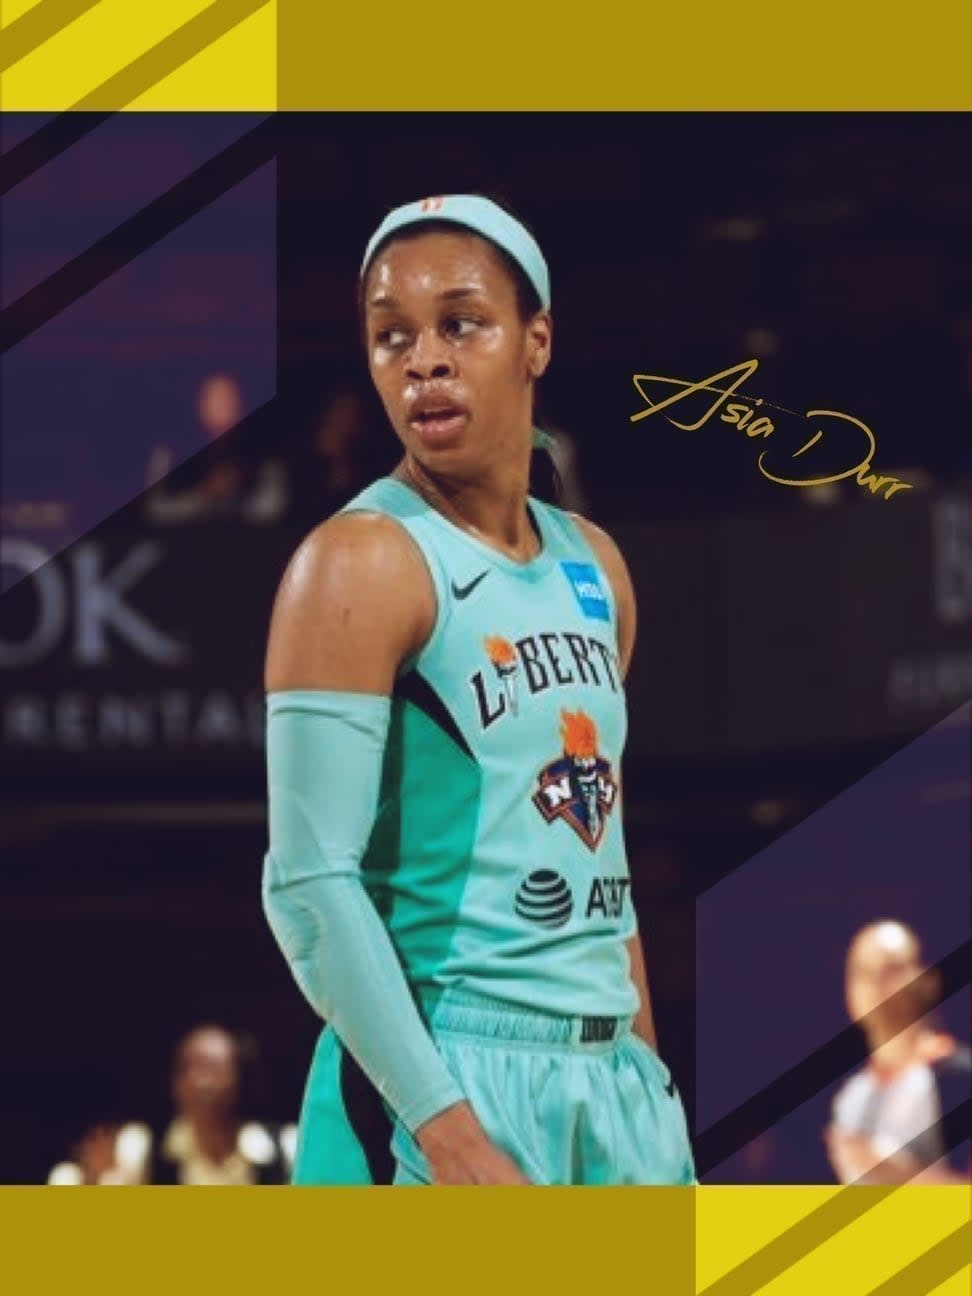 Asia Durr opened up about her long-term struggles with COVID-19 that forced her to opt out of the 2020 season and put her basketball career into question.